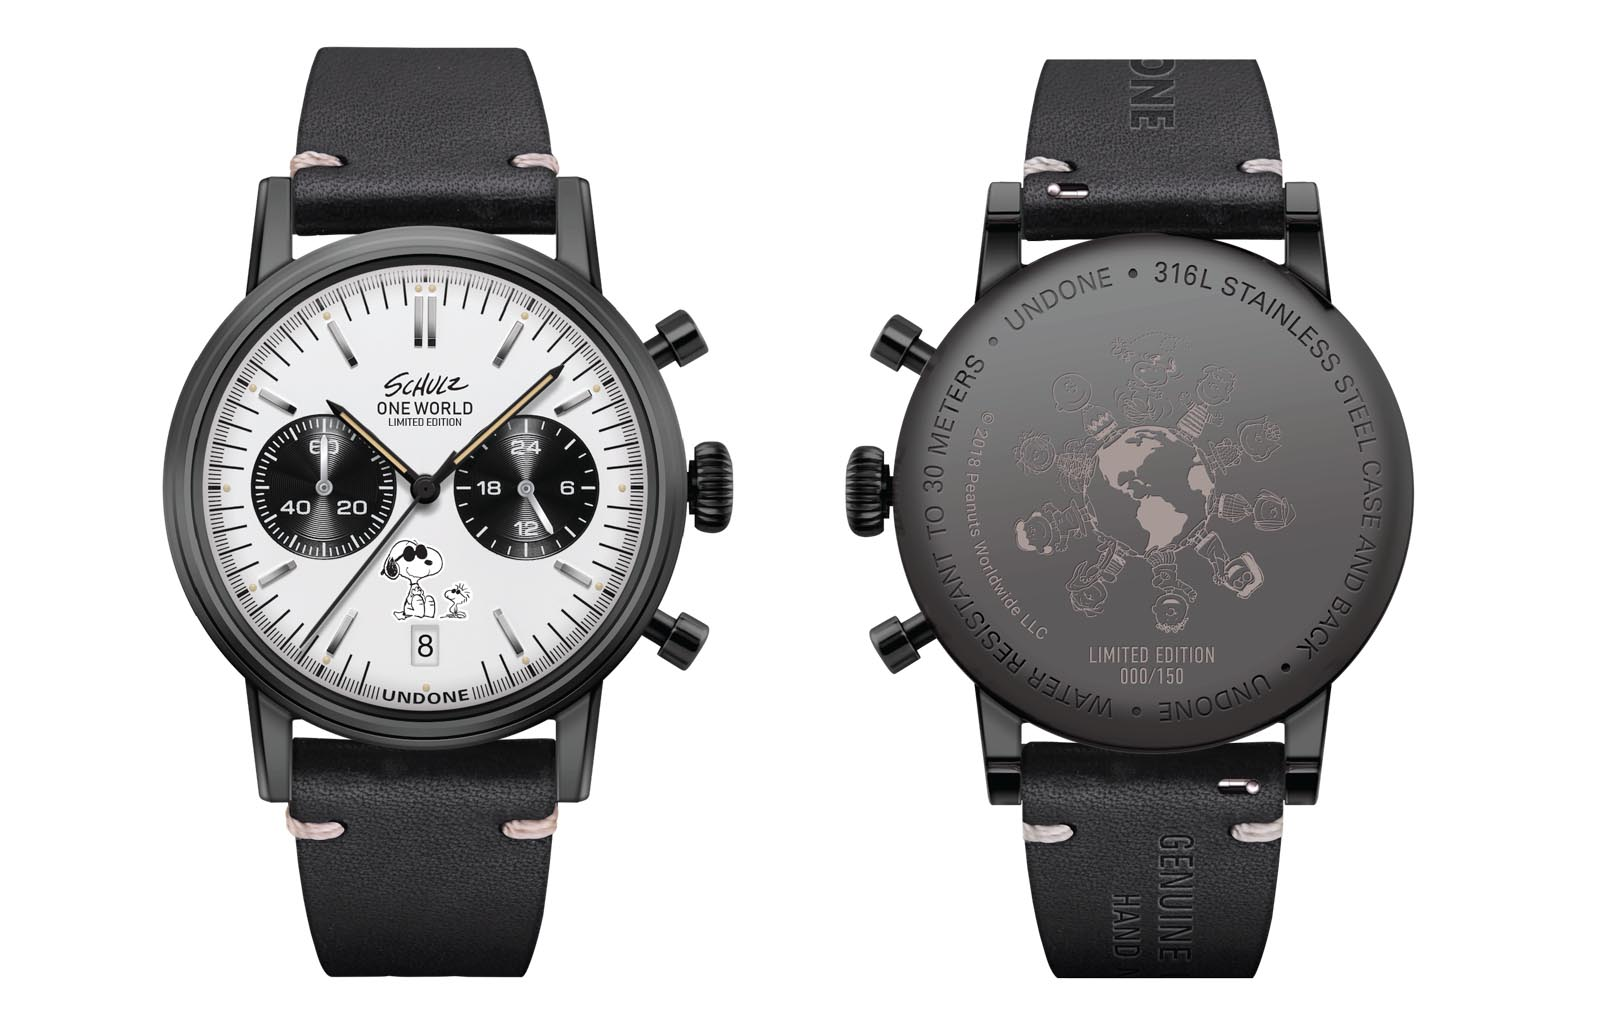 Undone Peanuts Urban One World Chronograph limited edition